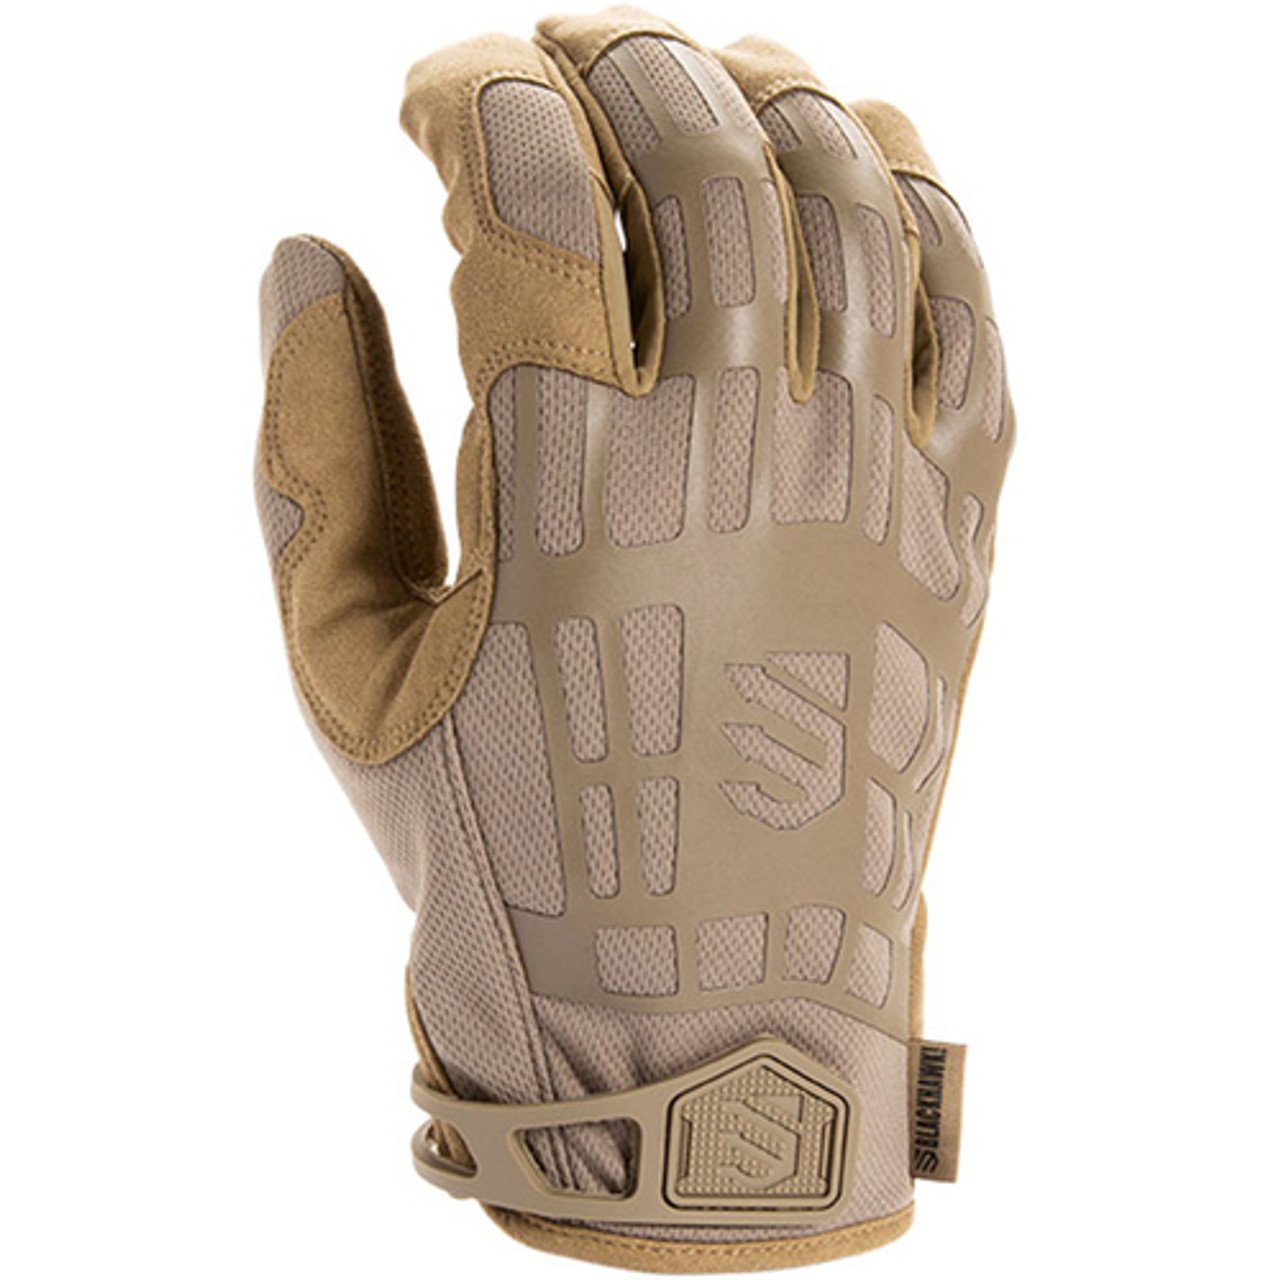 Blackhawk! GT001 Fury™ Utilitarian Glove, Comfortable, available in Black,  Coyote Tan, and Urban Gray